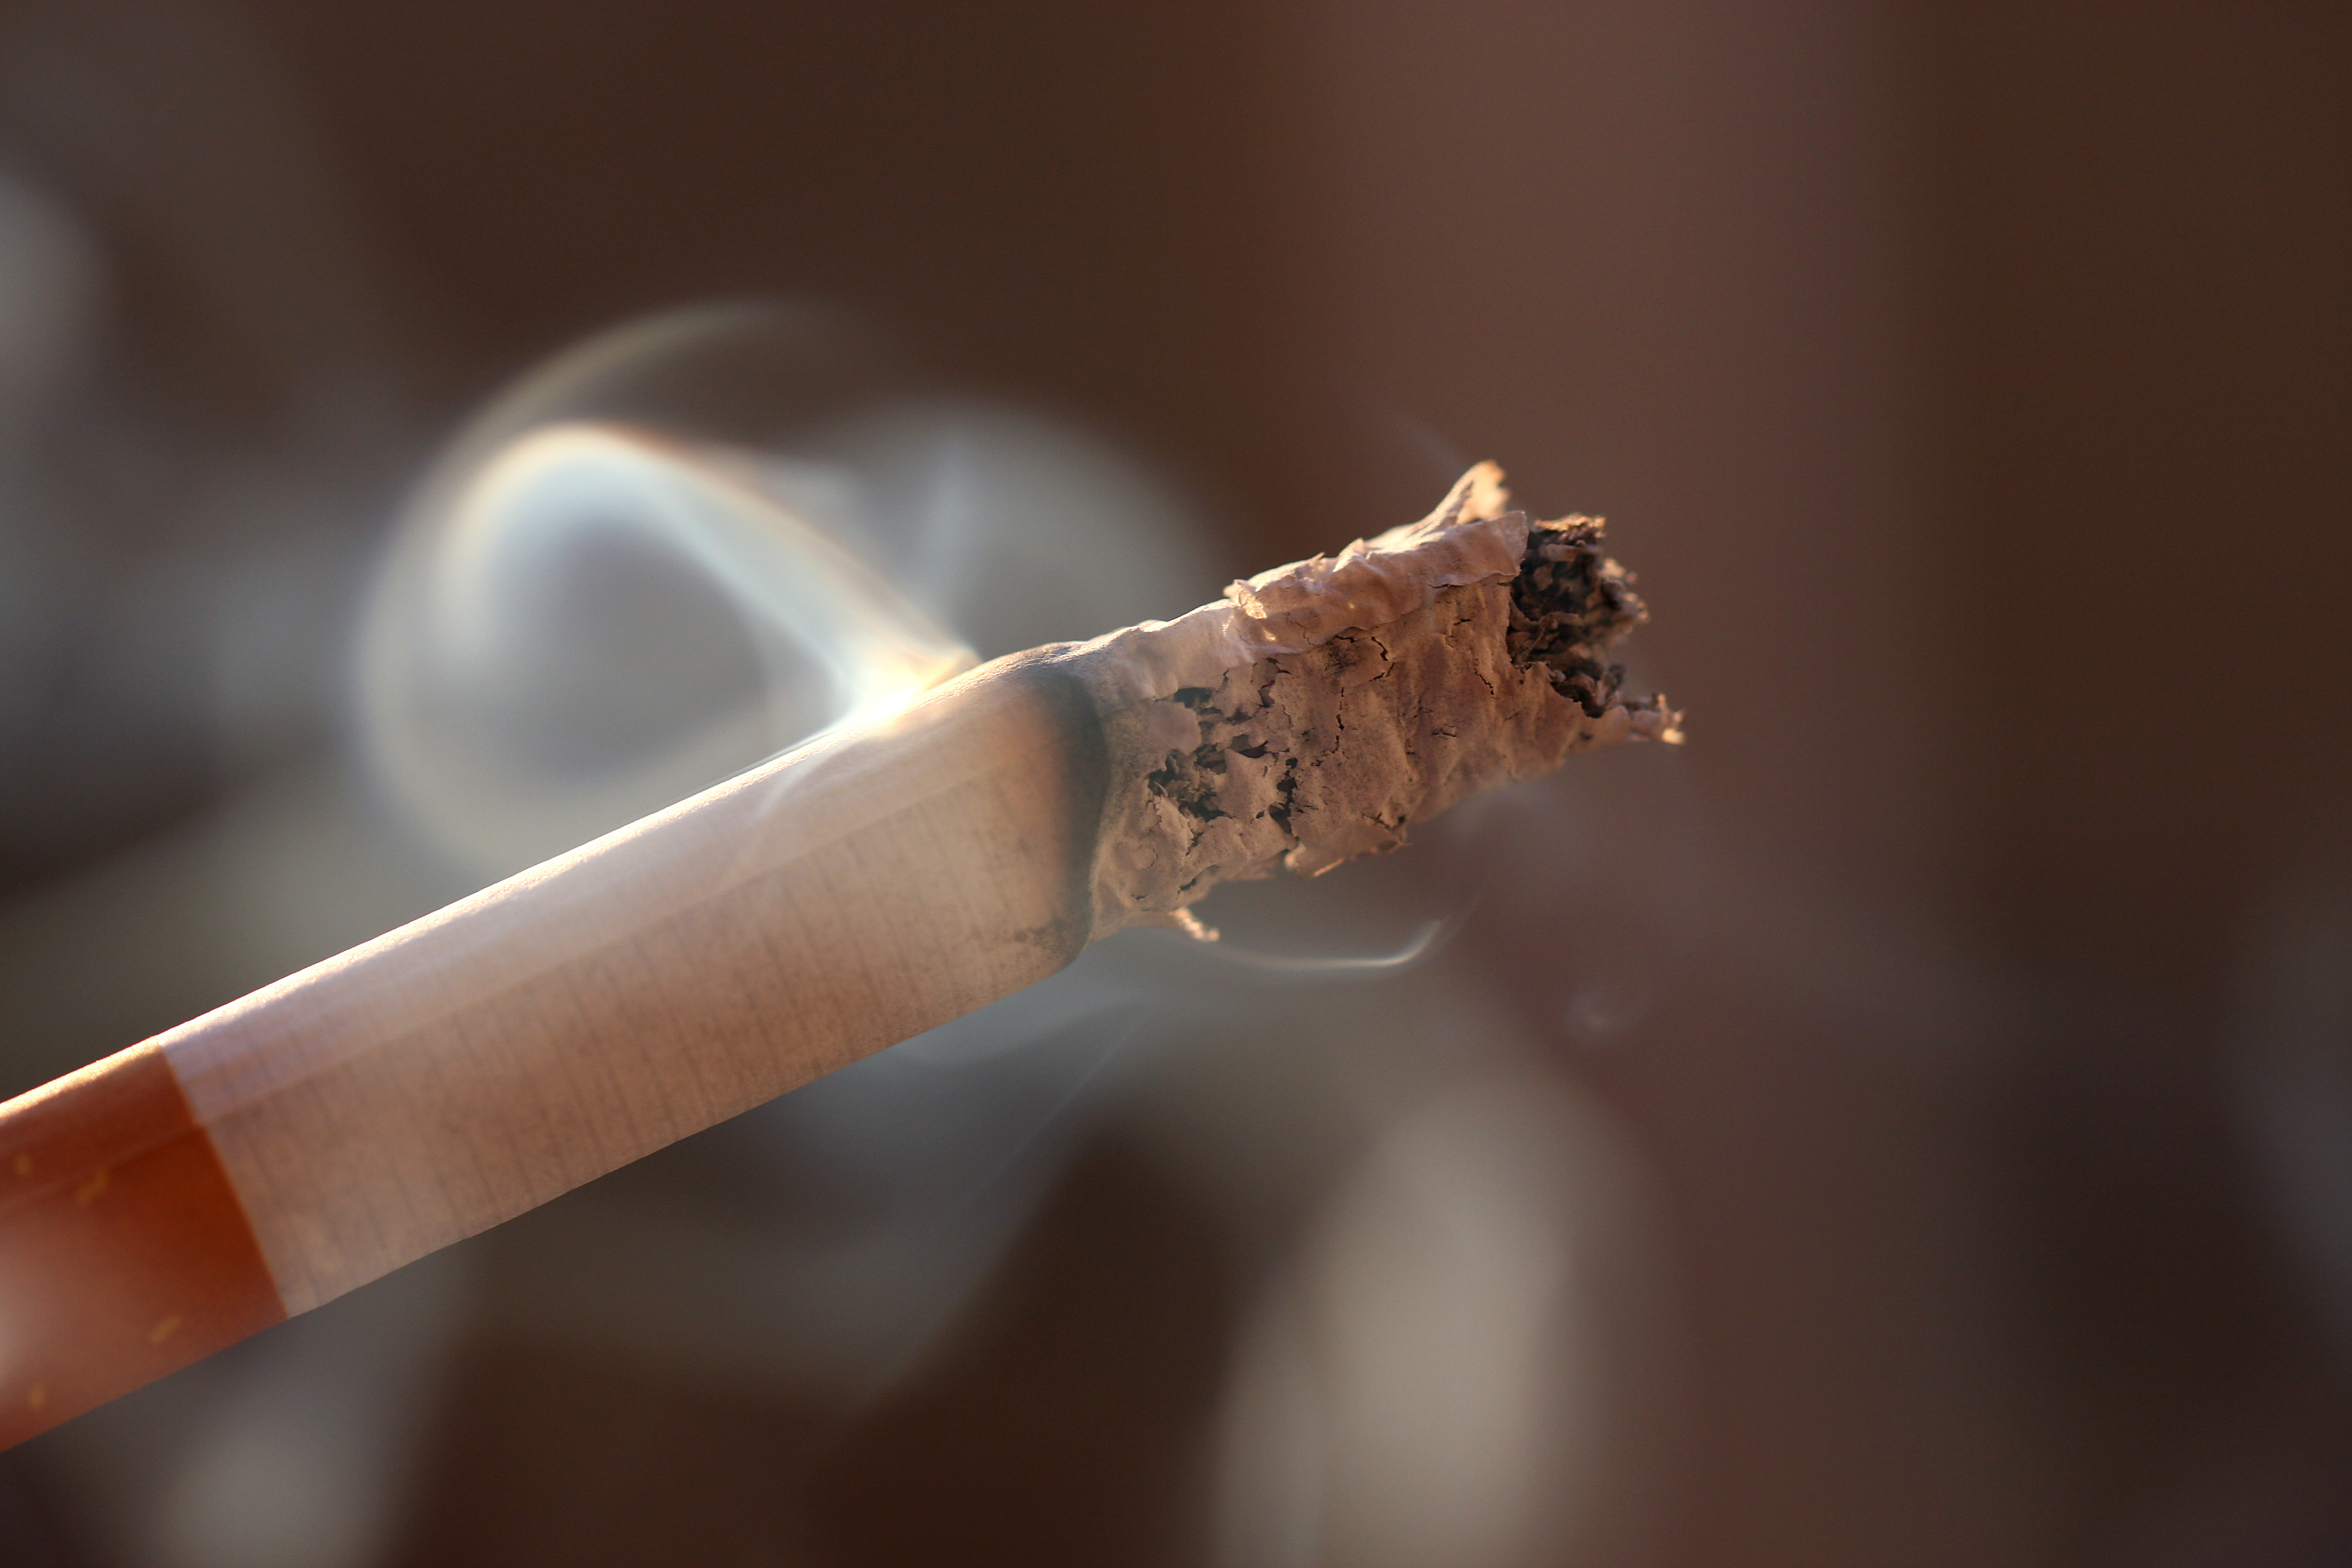 Fibromyalgia Patients Who Smoke Do So to Deal with Pain